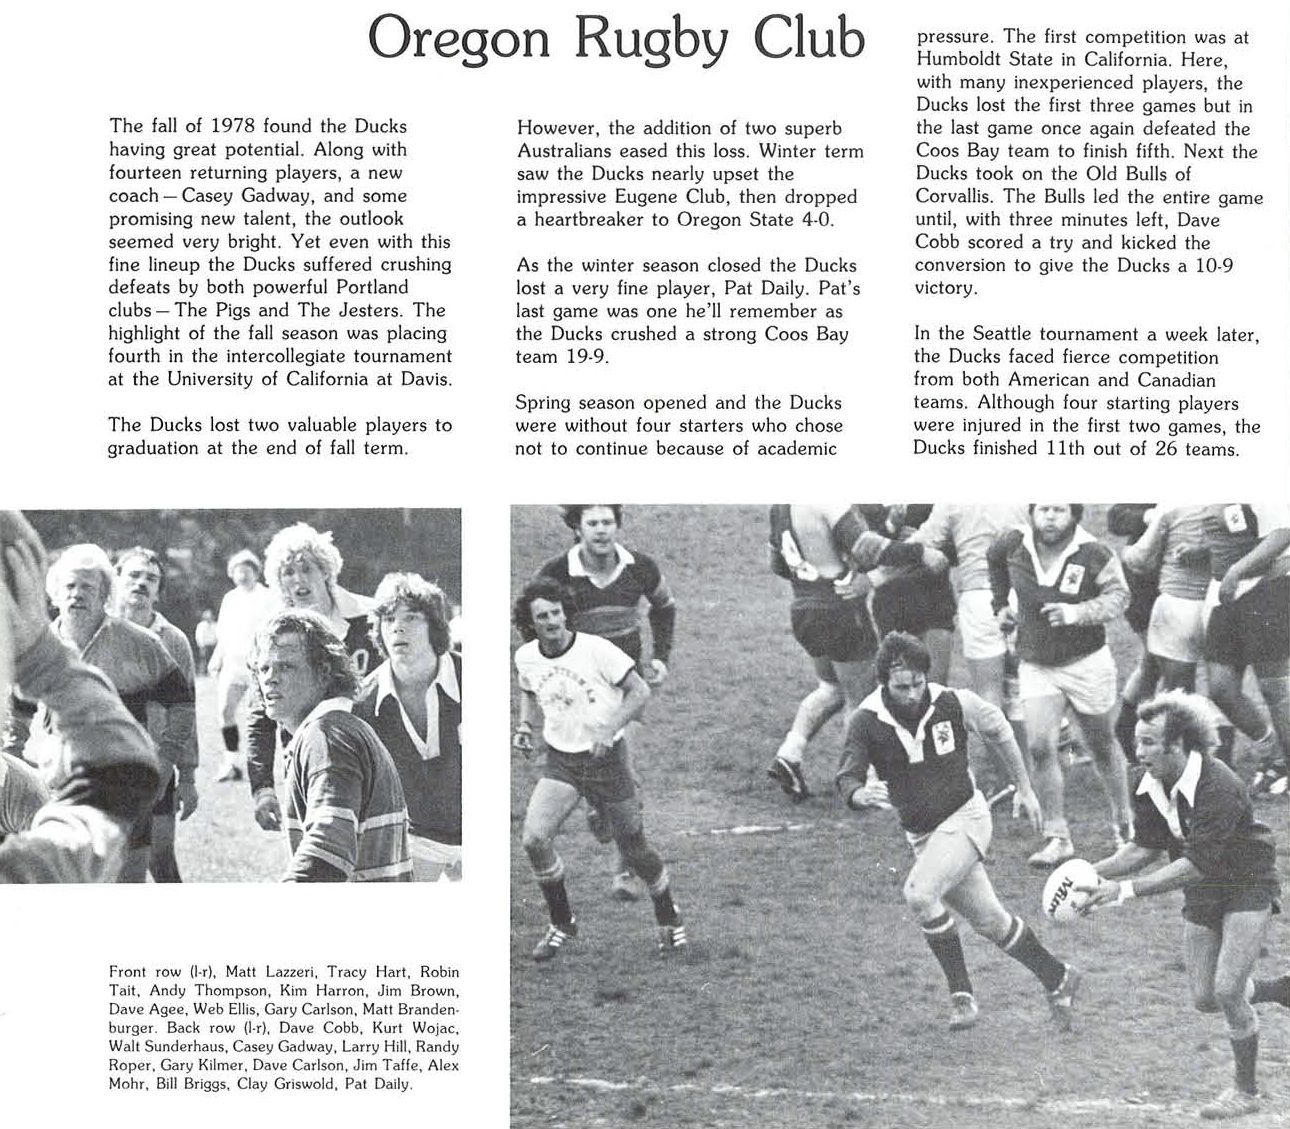 Oregon Rugby 1978 79 From The 1979 Oregana University Of